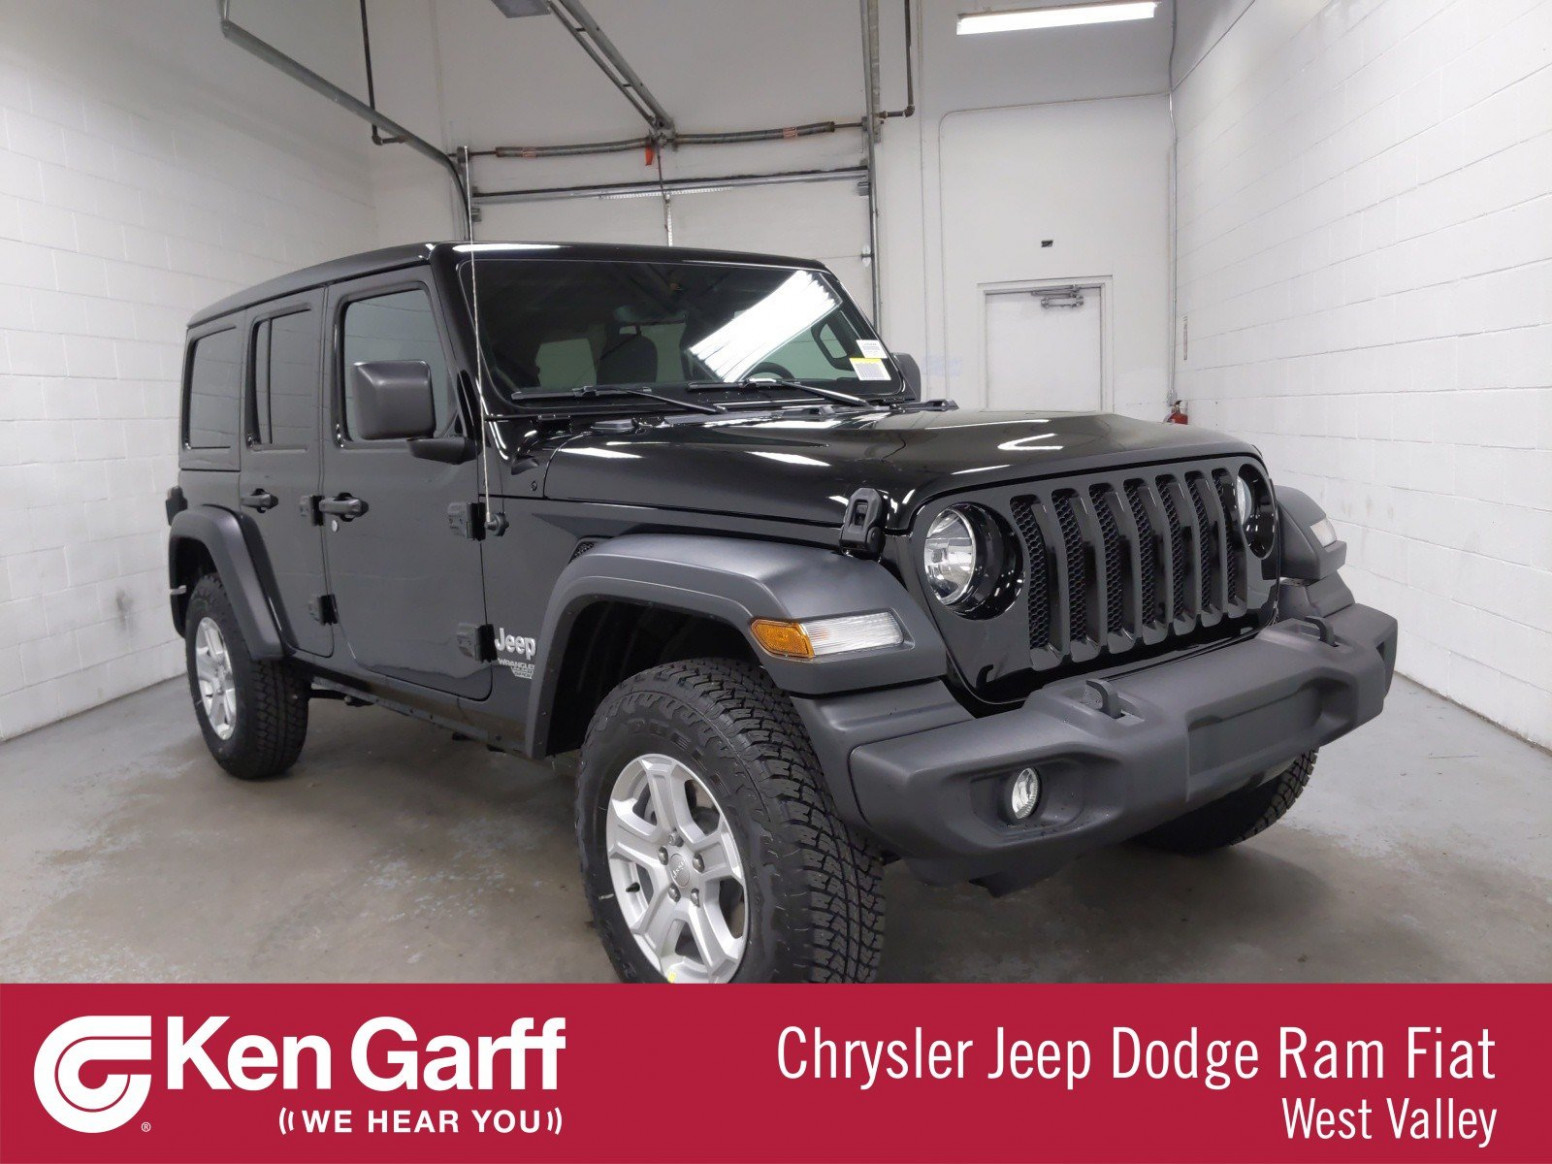 NEW 7 JEEP WRANGLER UNLIMITED SPORT S 7X7